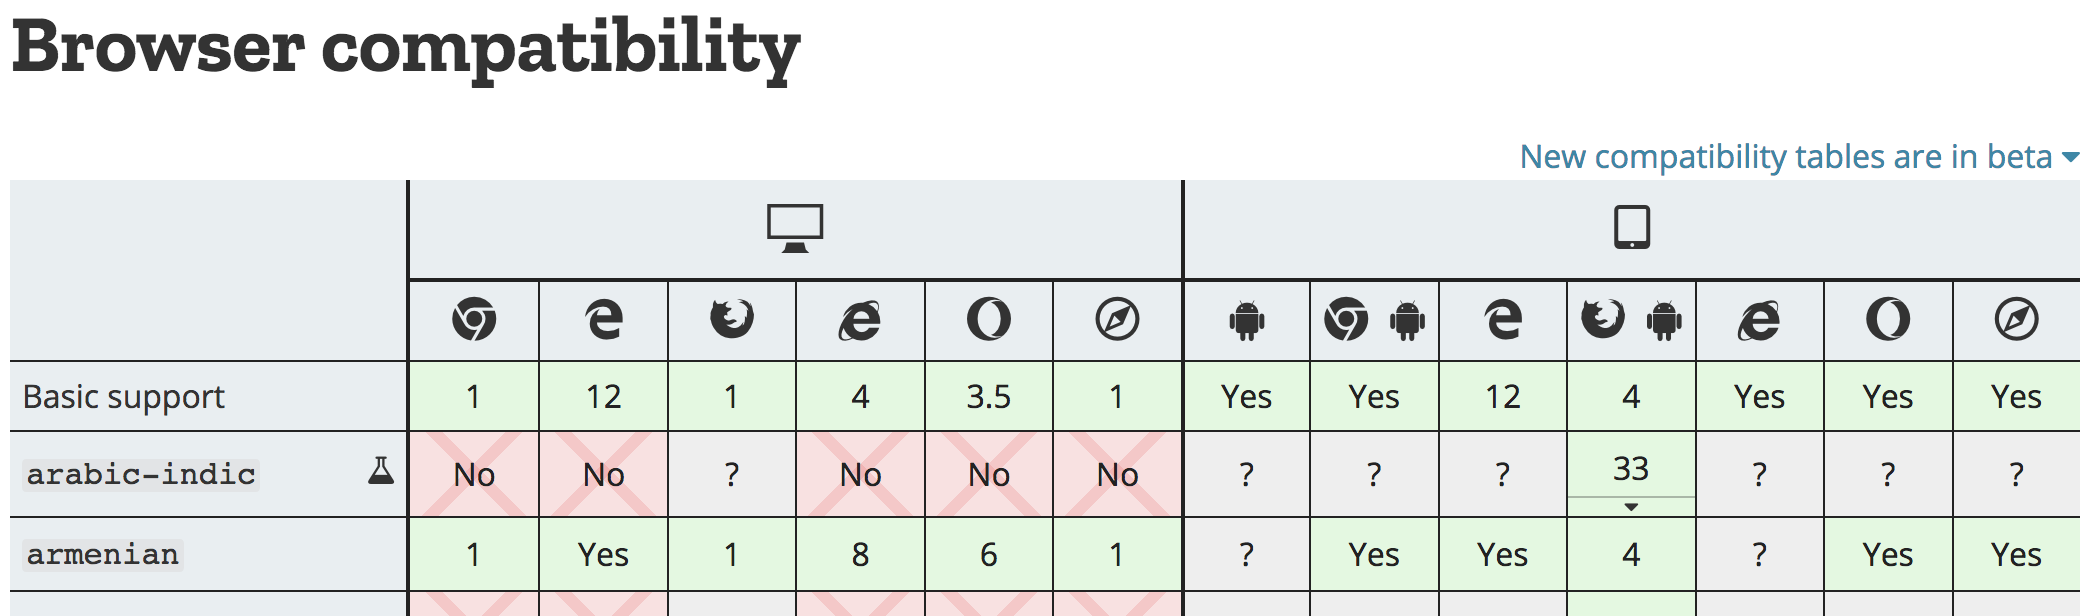 New Browser Compatibiility Table